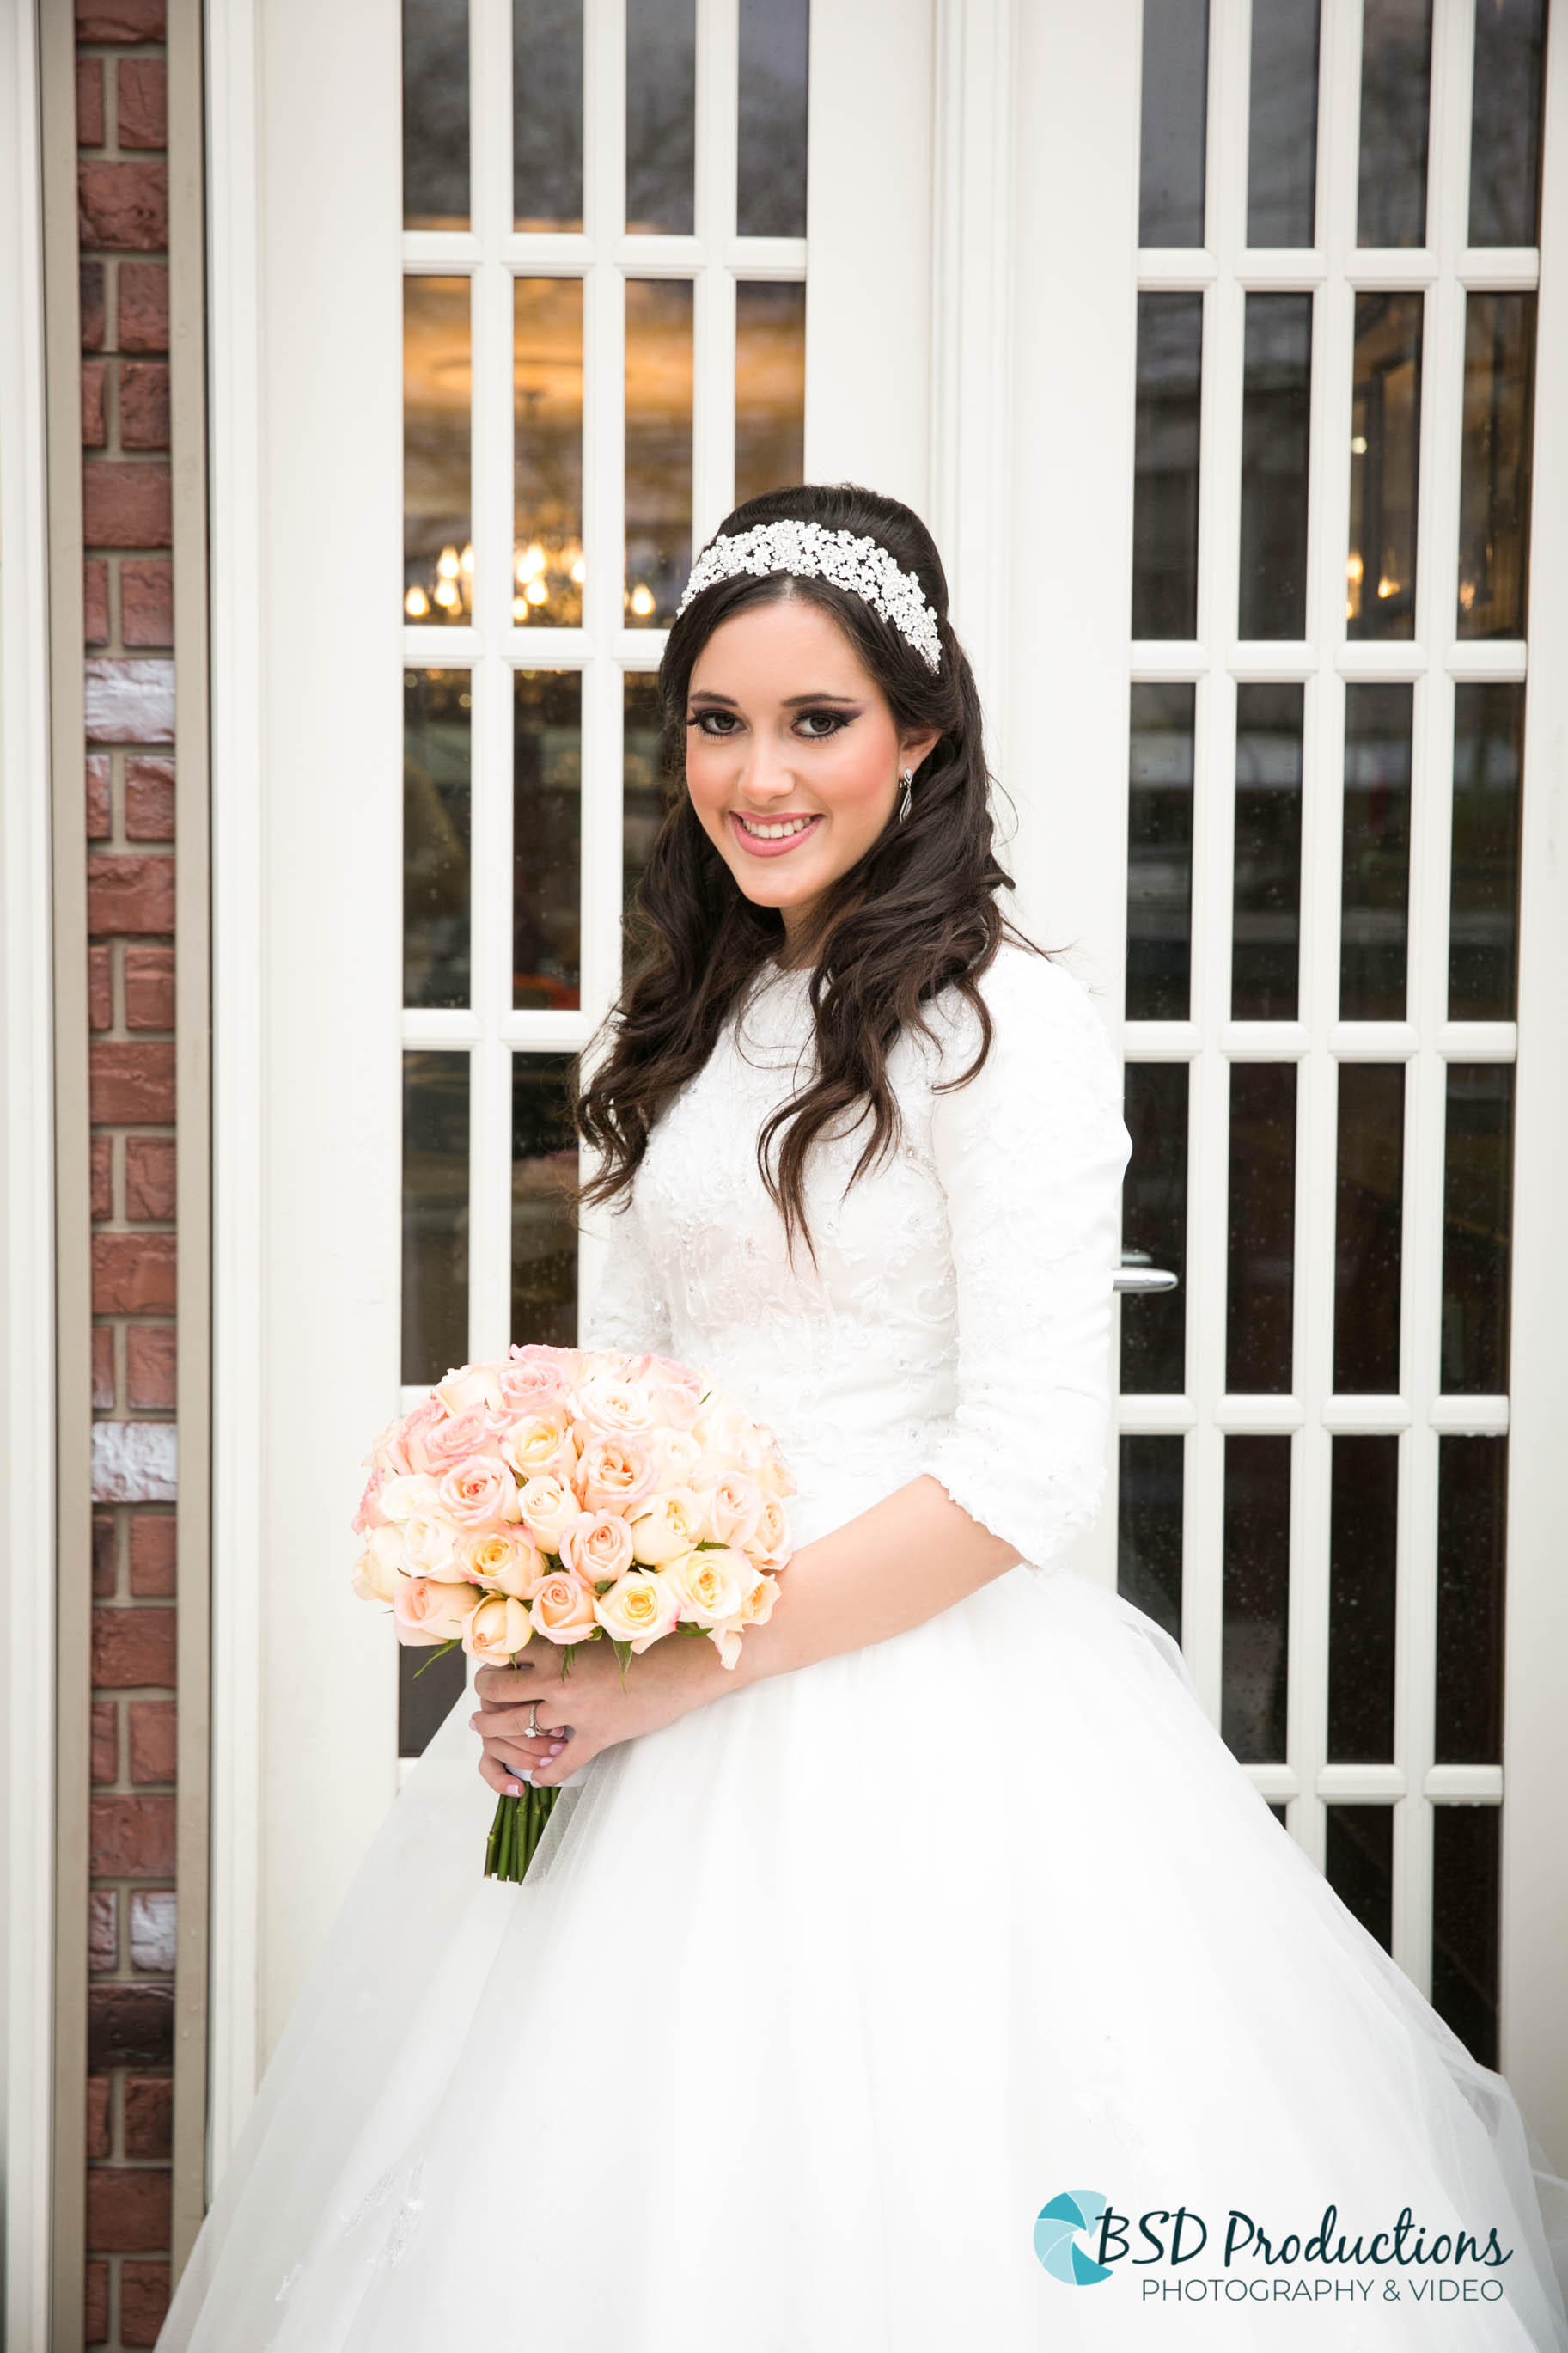 UH5A0201 Wedding – BSD Productions Photography